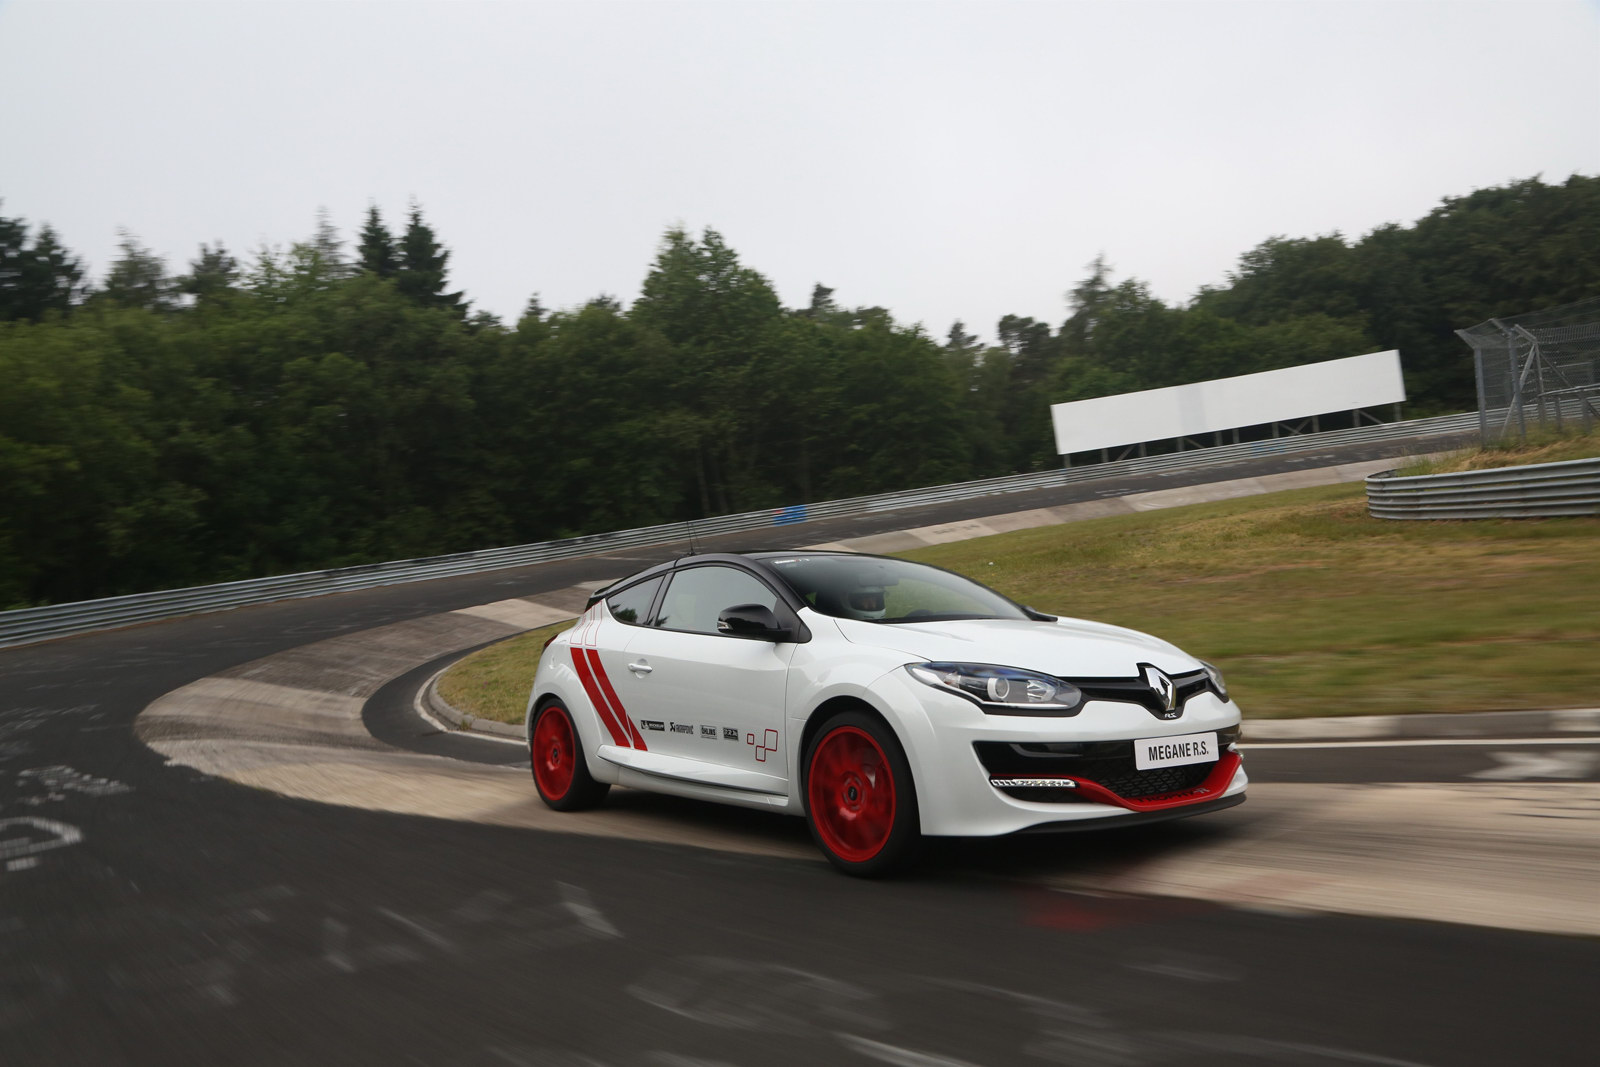 renault megane rs 275 trophy r priced from 45 000 autoevolution. Black Bedroom Furniture Sets. Home Design Ideas